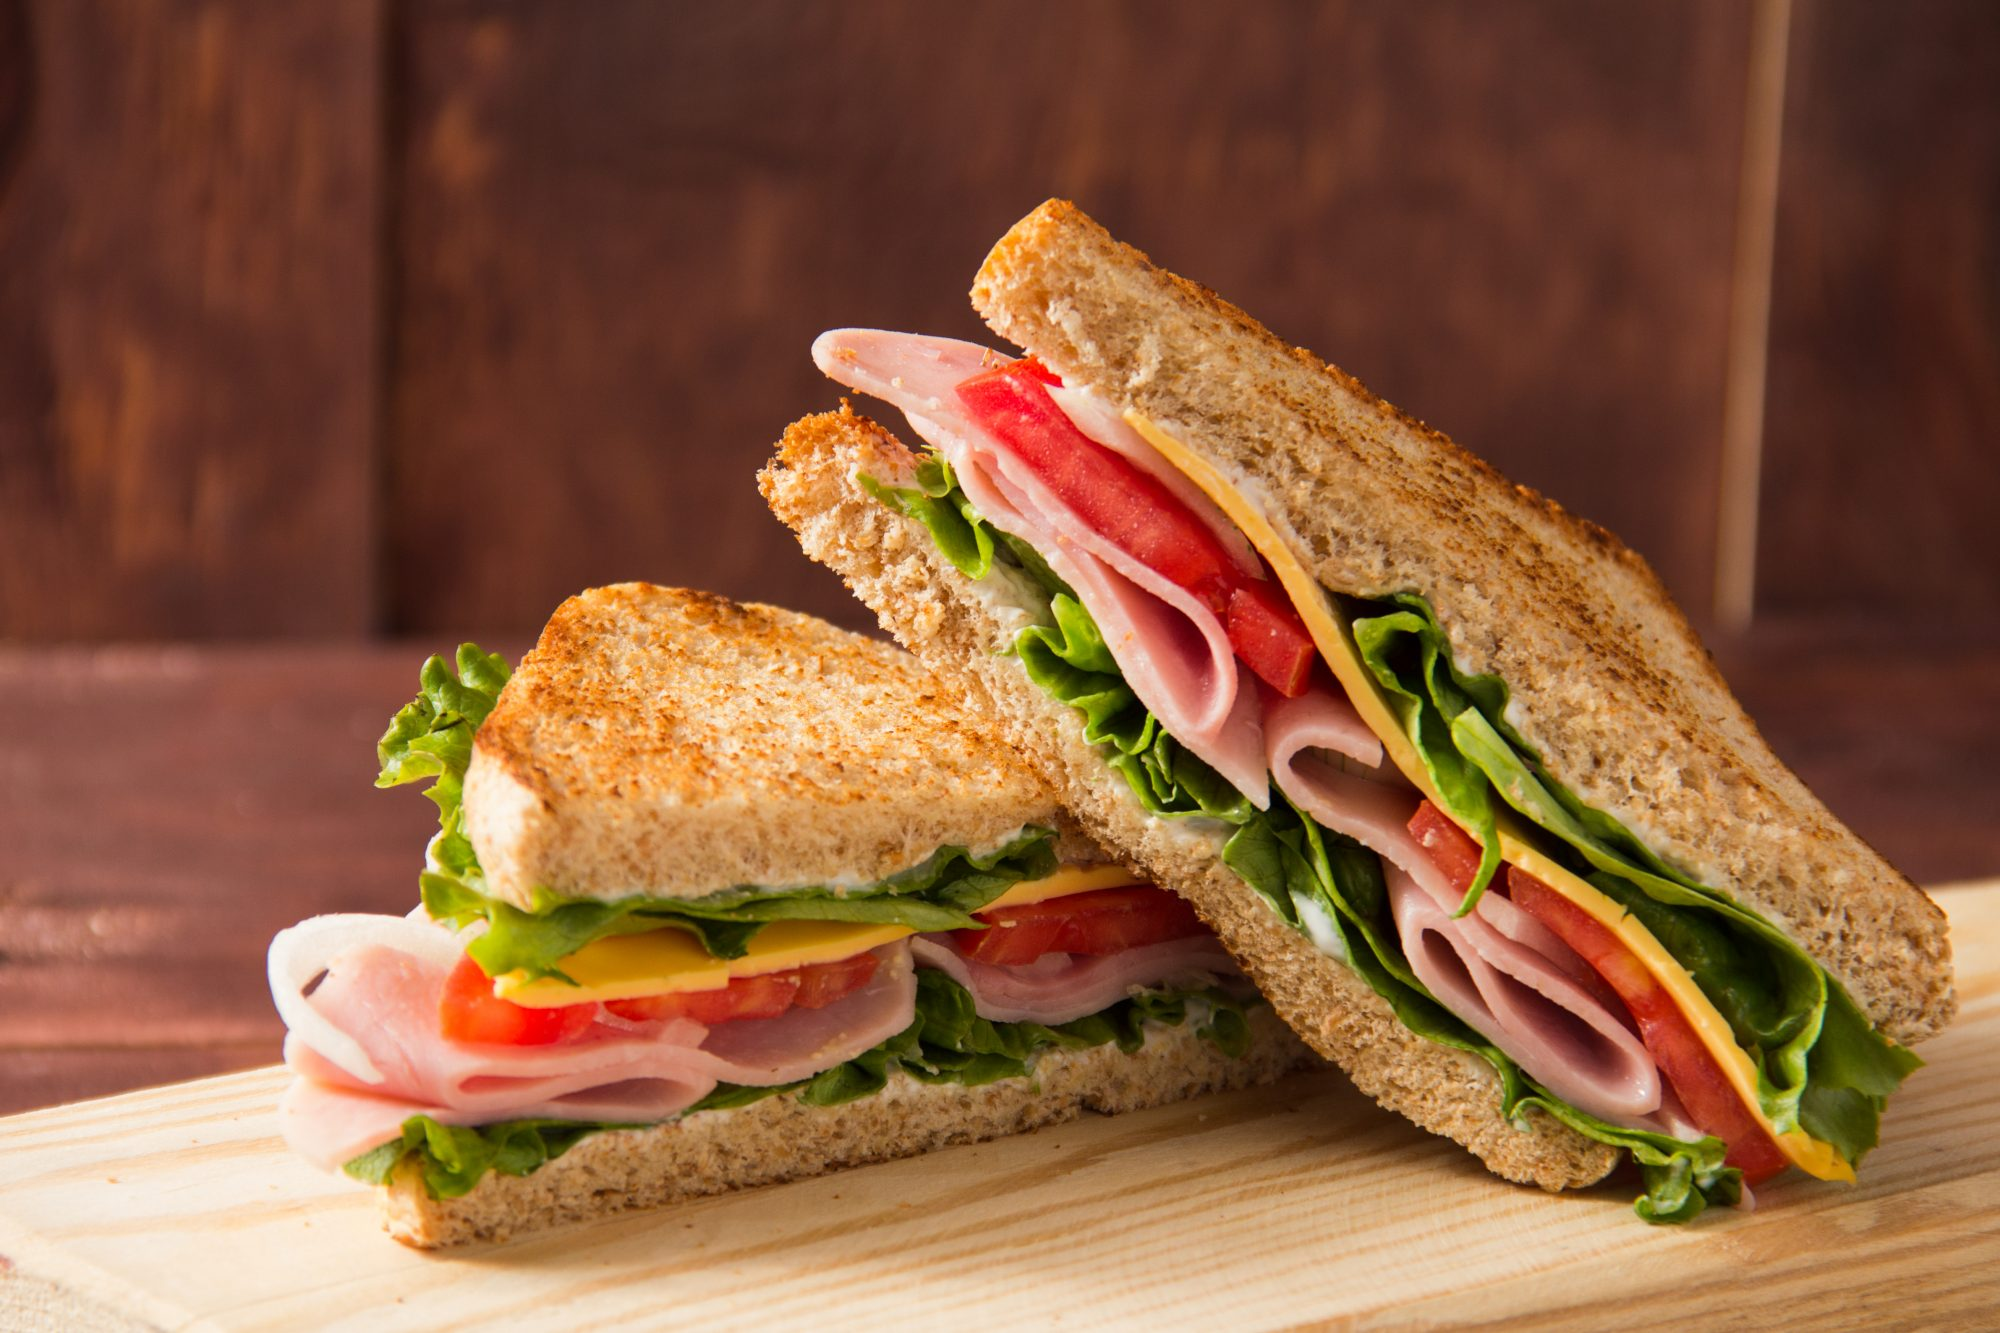 What Your Sandwich Cutting Style Says about Your Personality